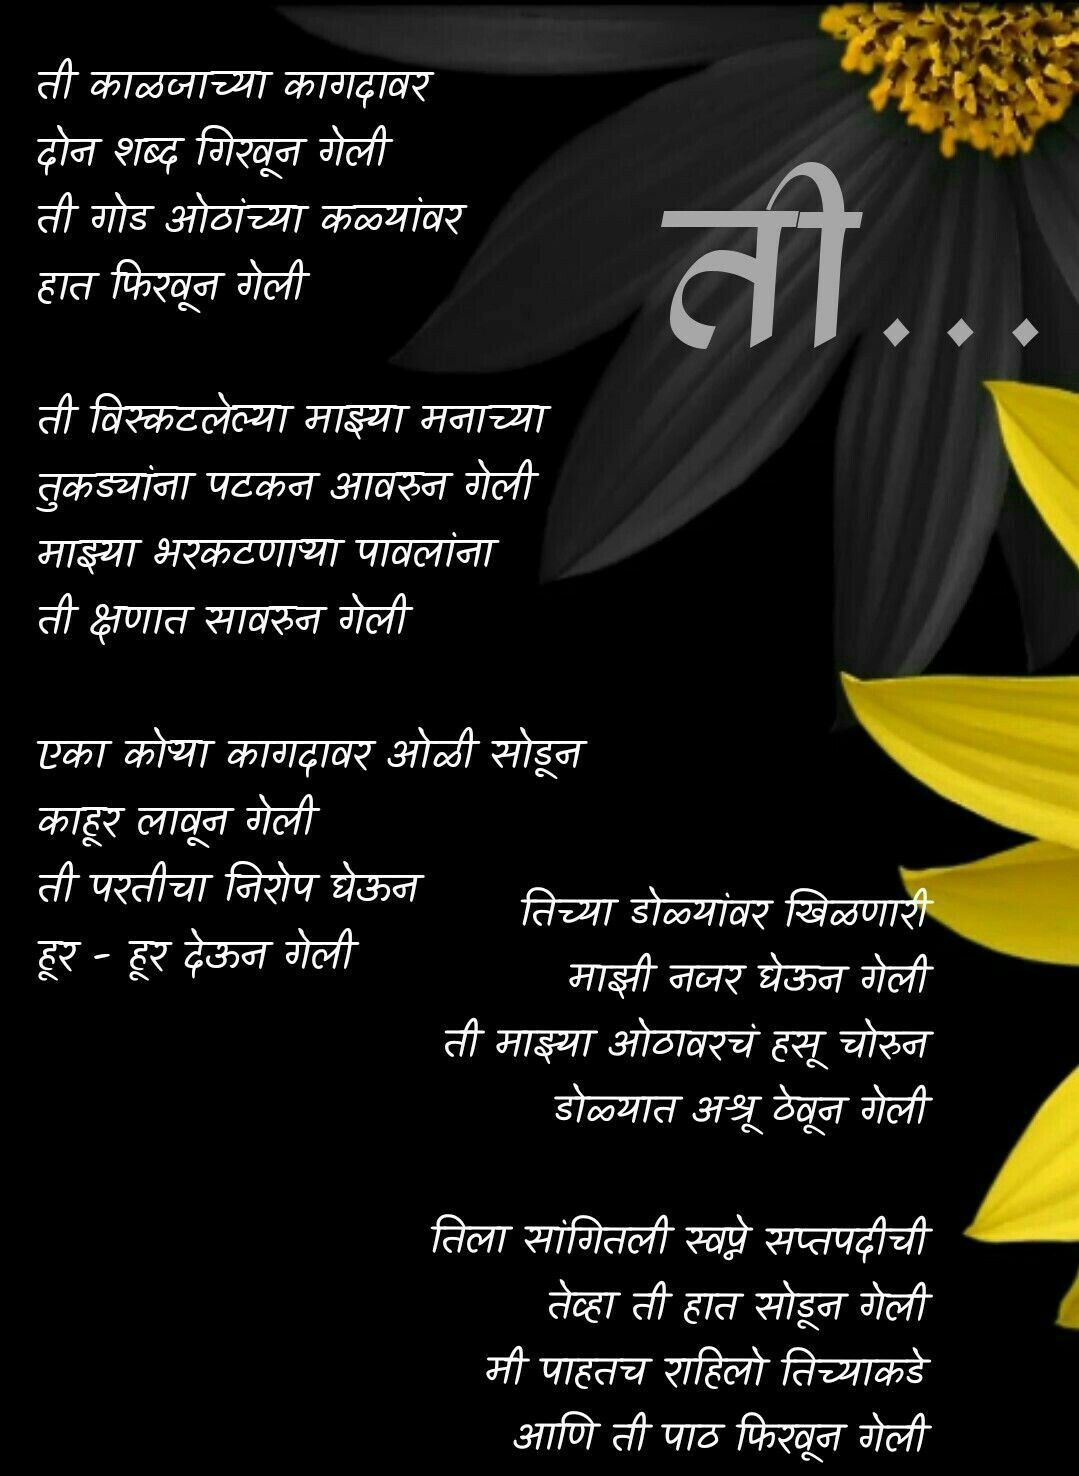 Pin by Swapnil Patil on Marathi Poem Love poems for